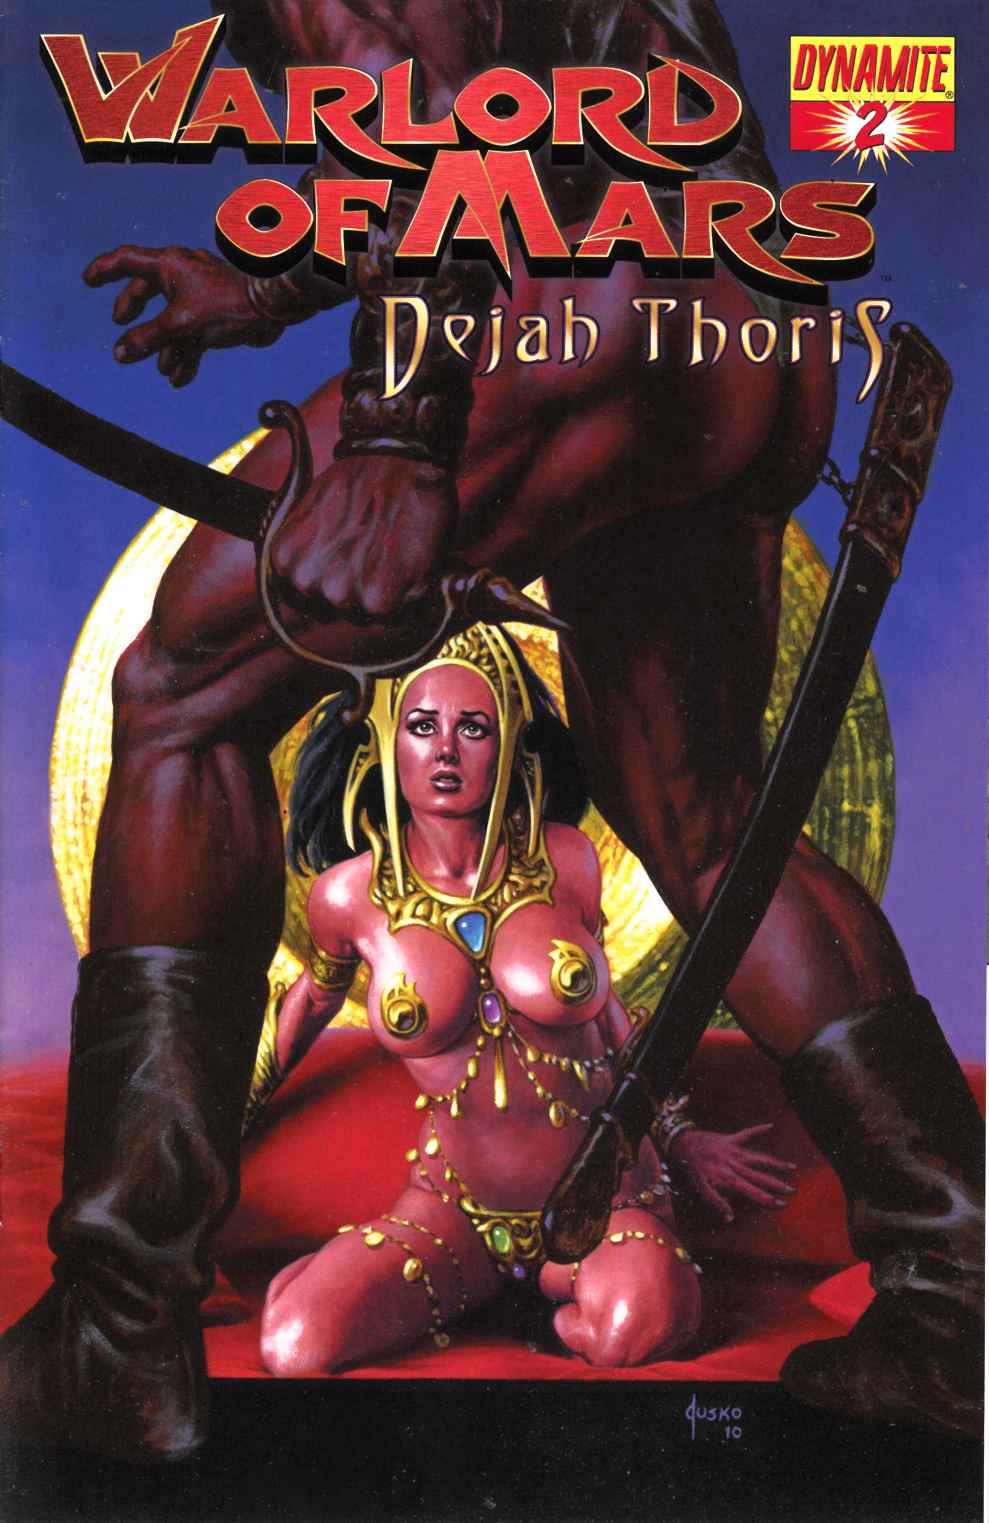 Warlord of Mars Dejah Thoris #2 Jusko Cover Very Fine Plus (8.5) [Dynamite Comic] THUMBNAIL